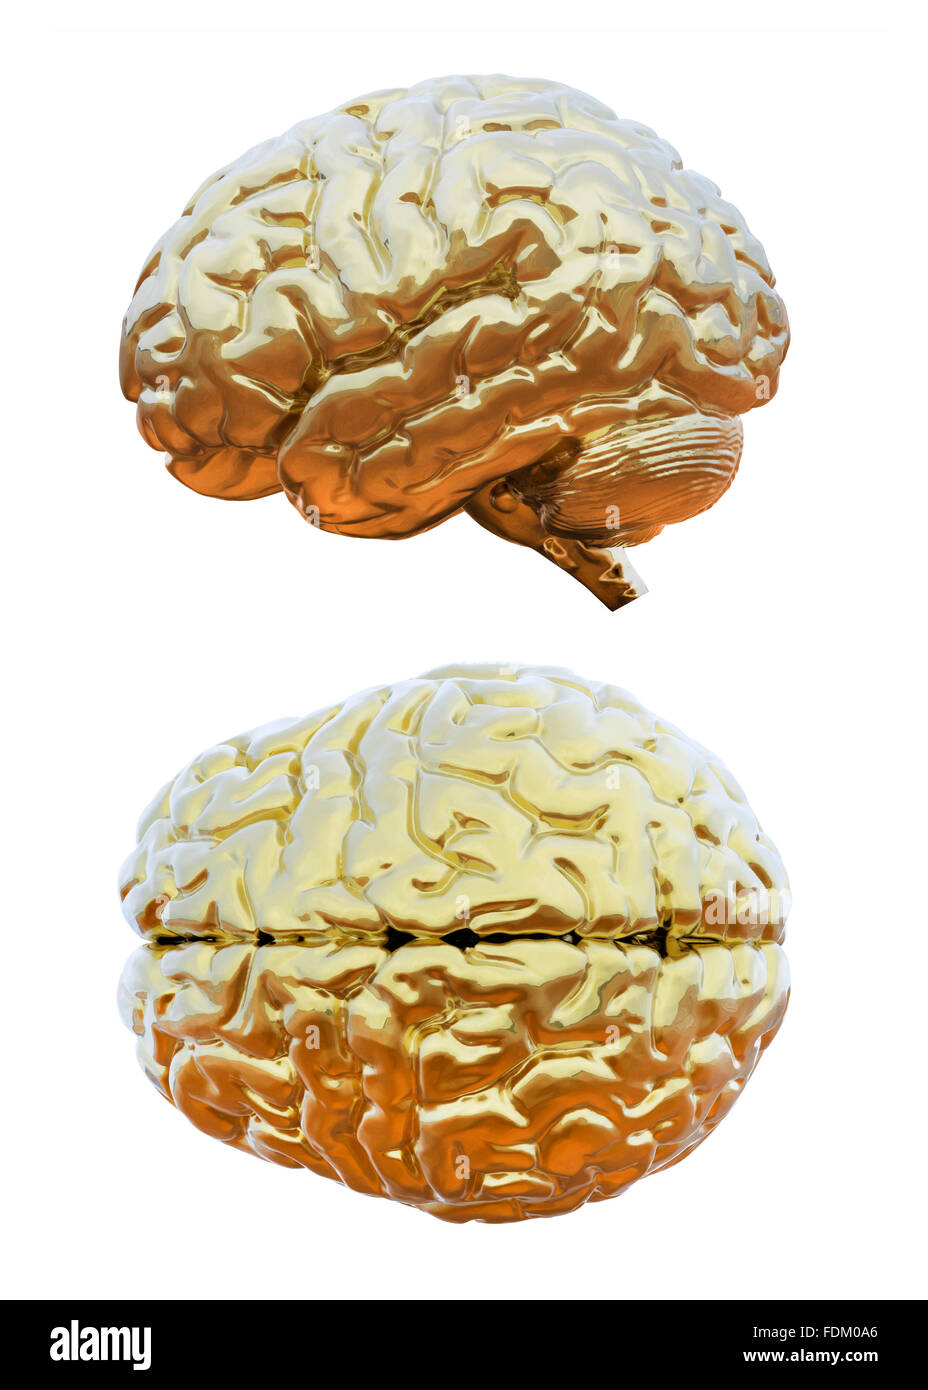 Cerebro Humano golden Foto de stock